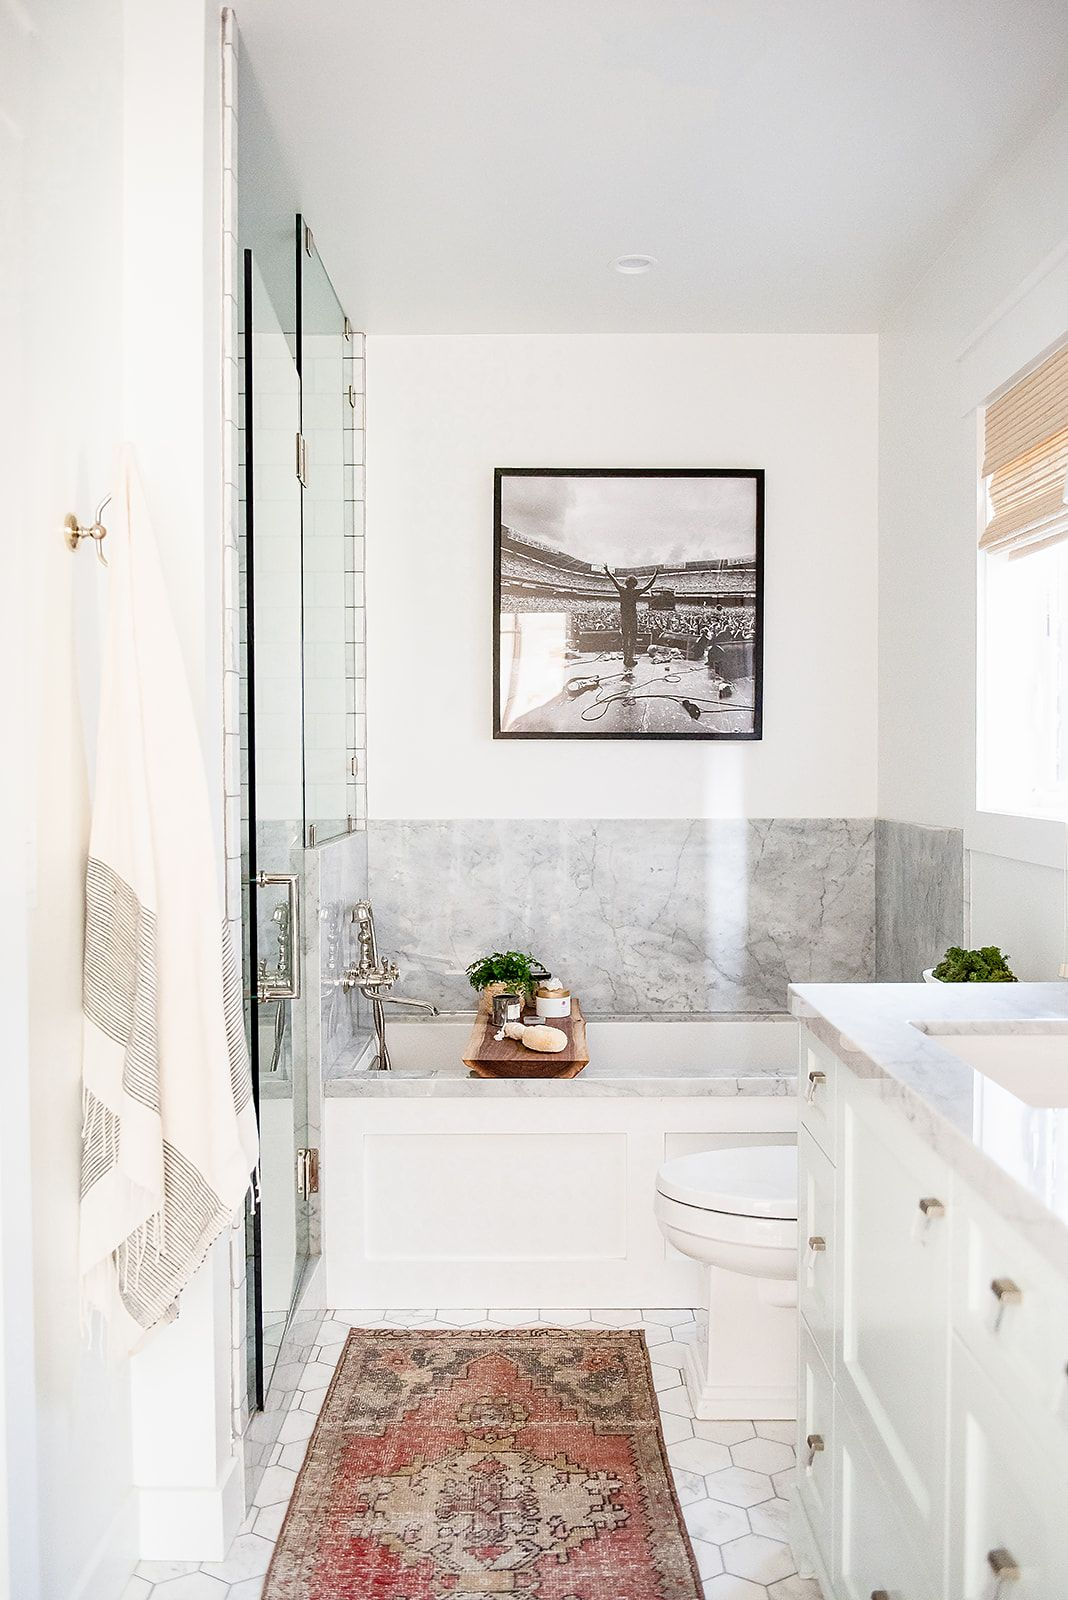 13 Smart Ways To Upgrade Your Bathroom Without Renovating It With